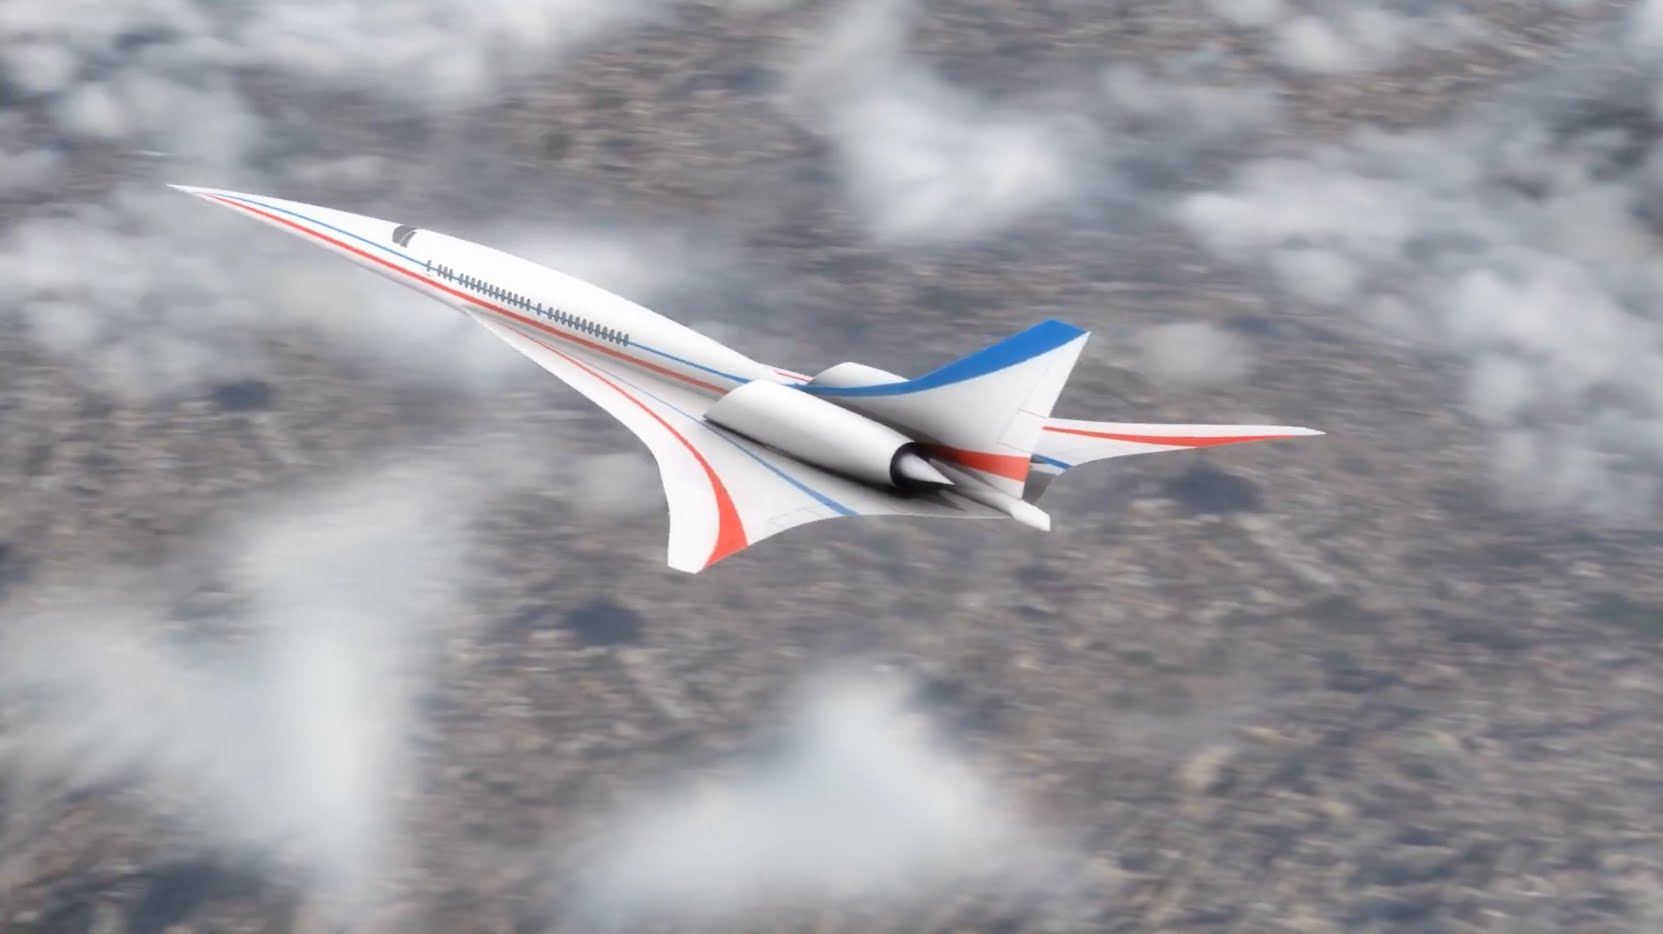 NASA ready for supersonic NextGen X-planes